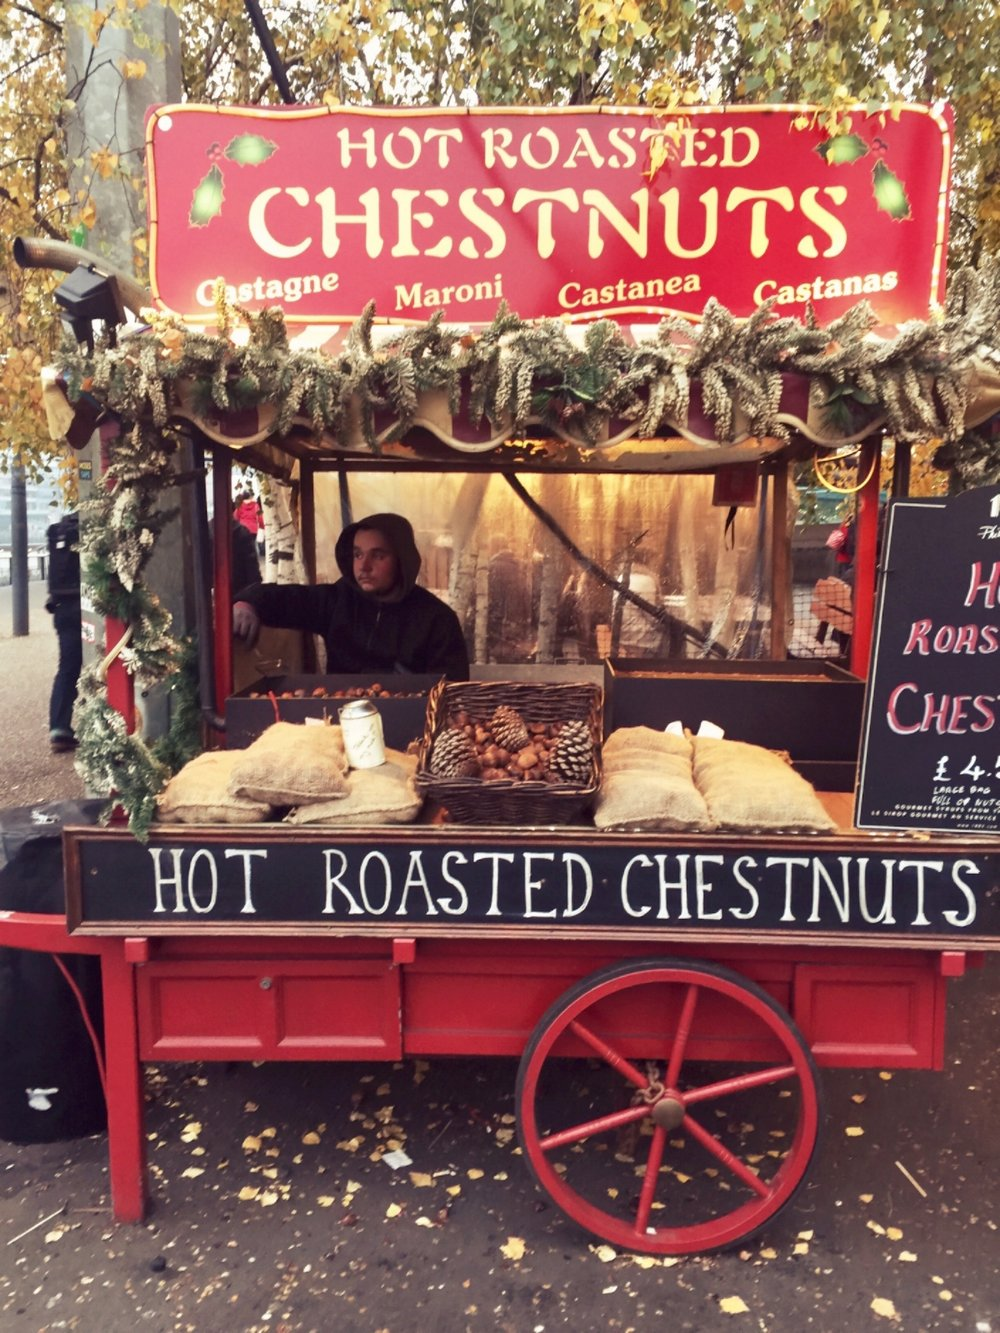 Roasted Chestnut at The Southbank Christmas Market